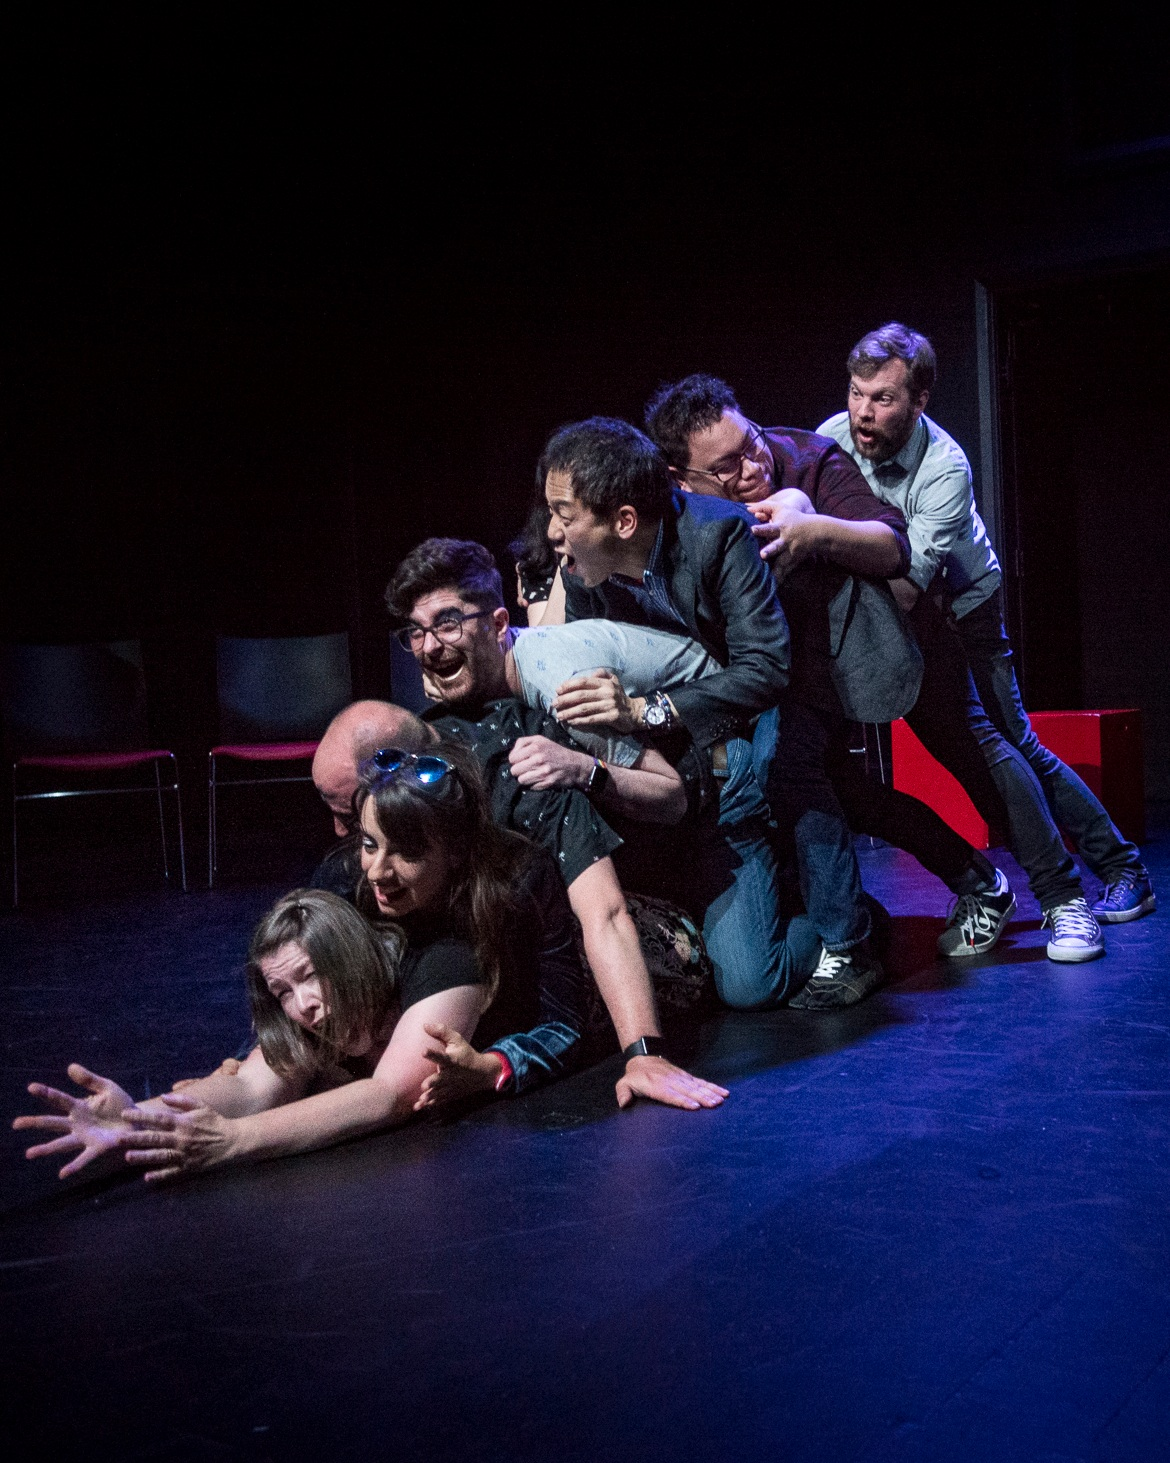 NZIF 2017 NZ vs the World Photo by Ali Little  Image: Seven improvisors piled on top of each other as if stuck down a chute, laughing and shrieking.